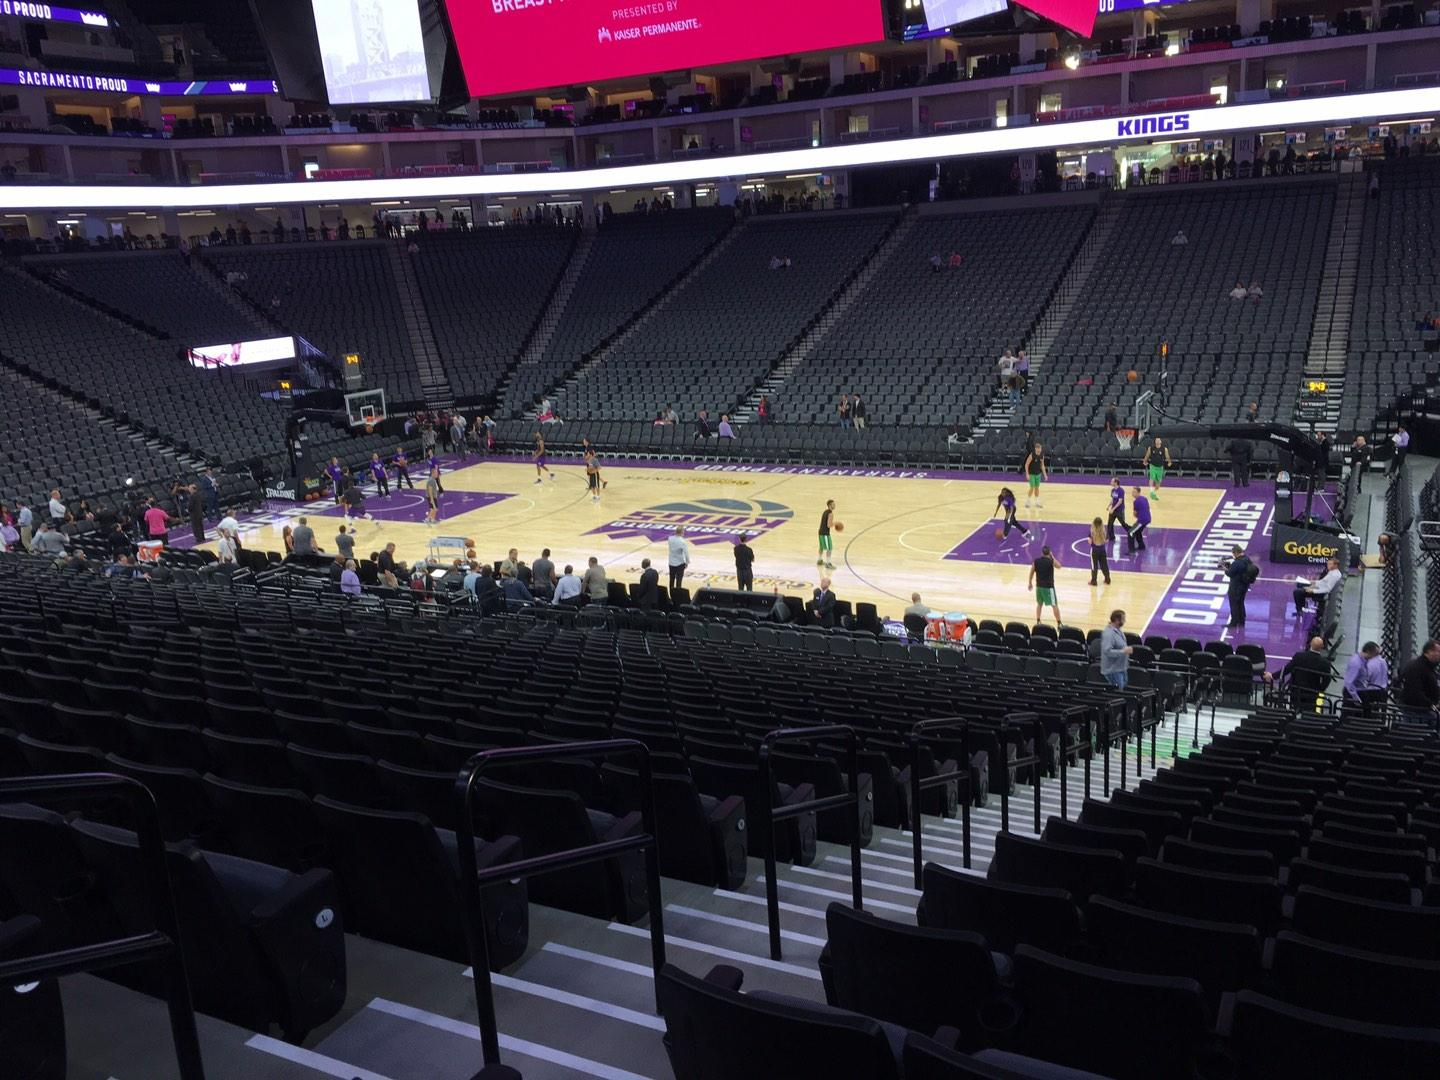 Golden 1 Center Section 105 Row P Seat 14